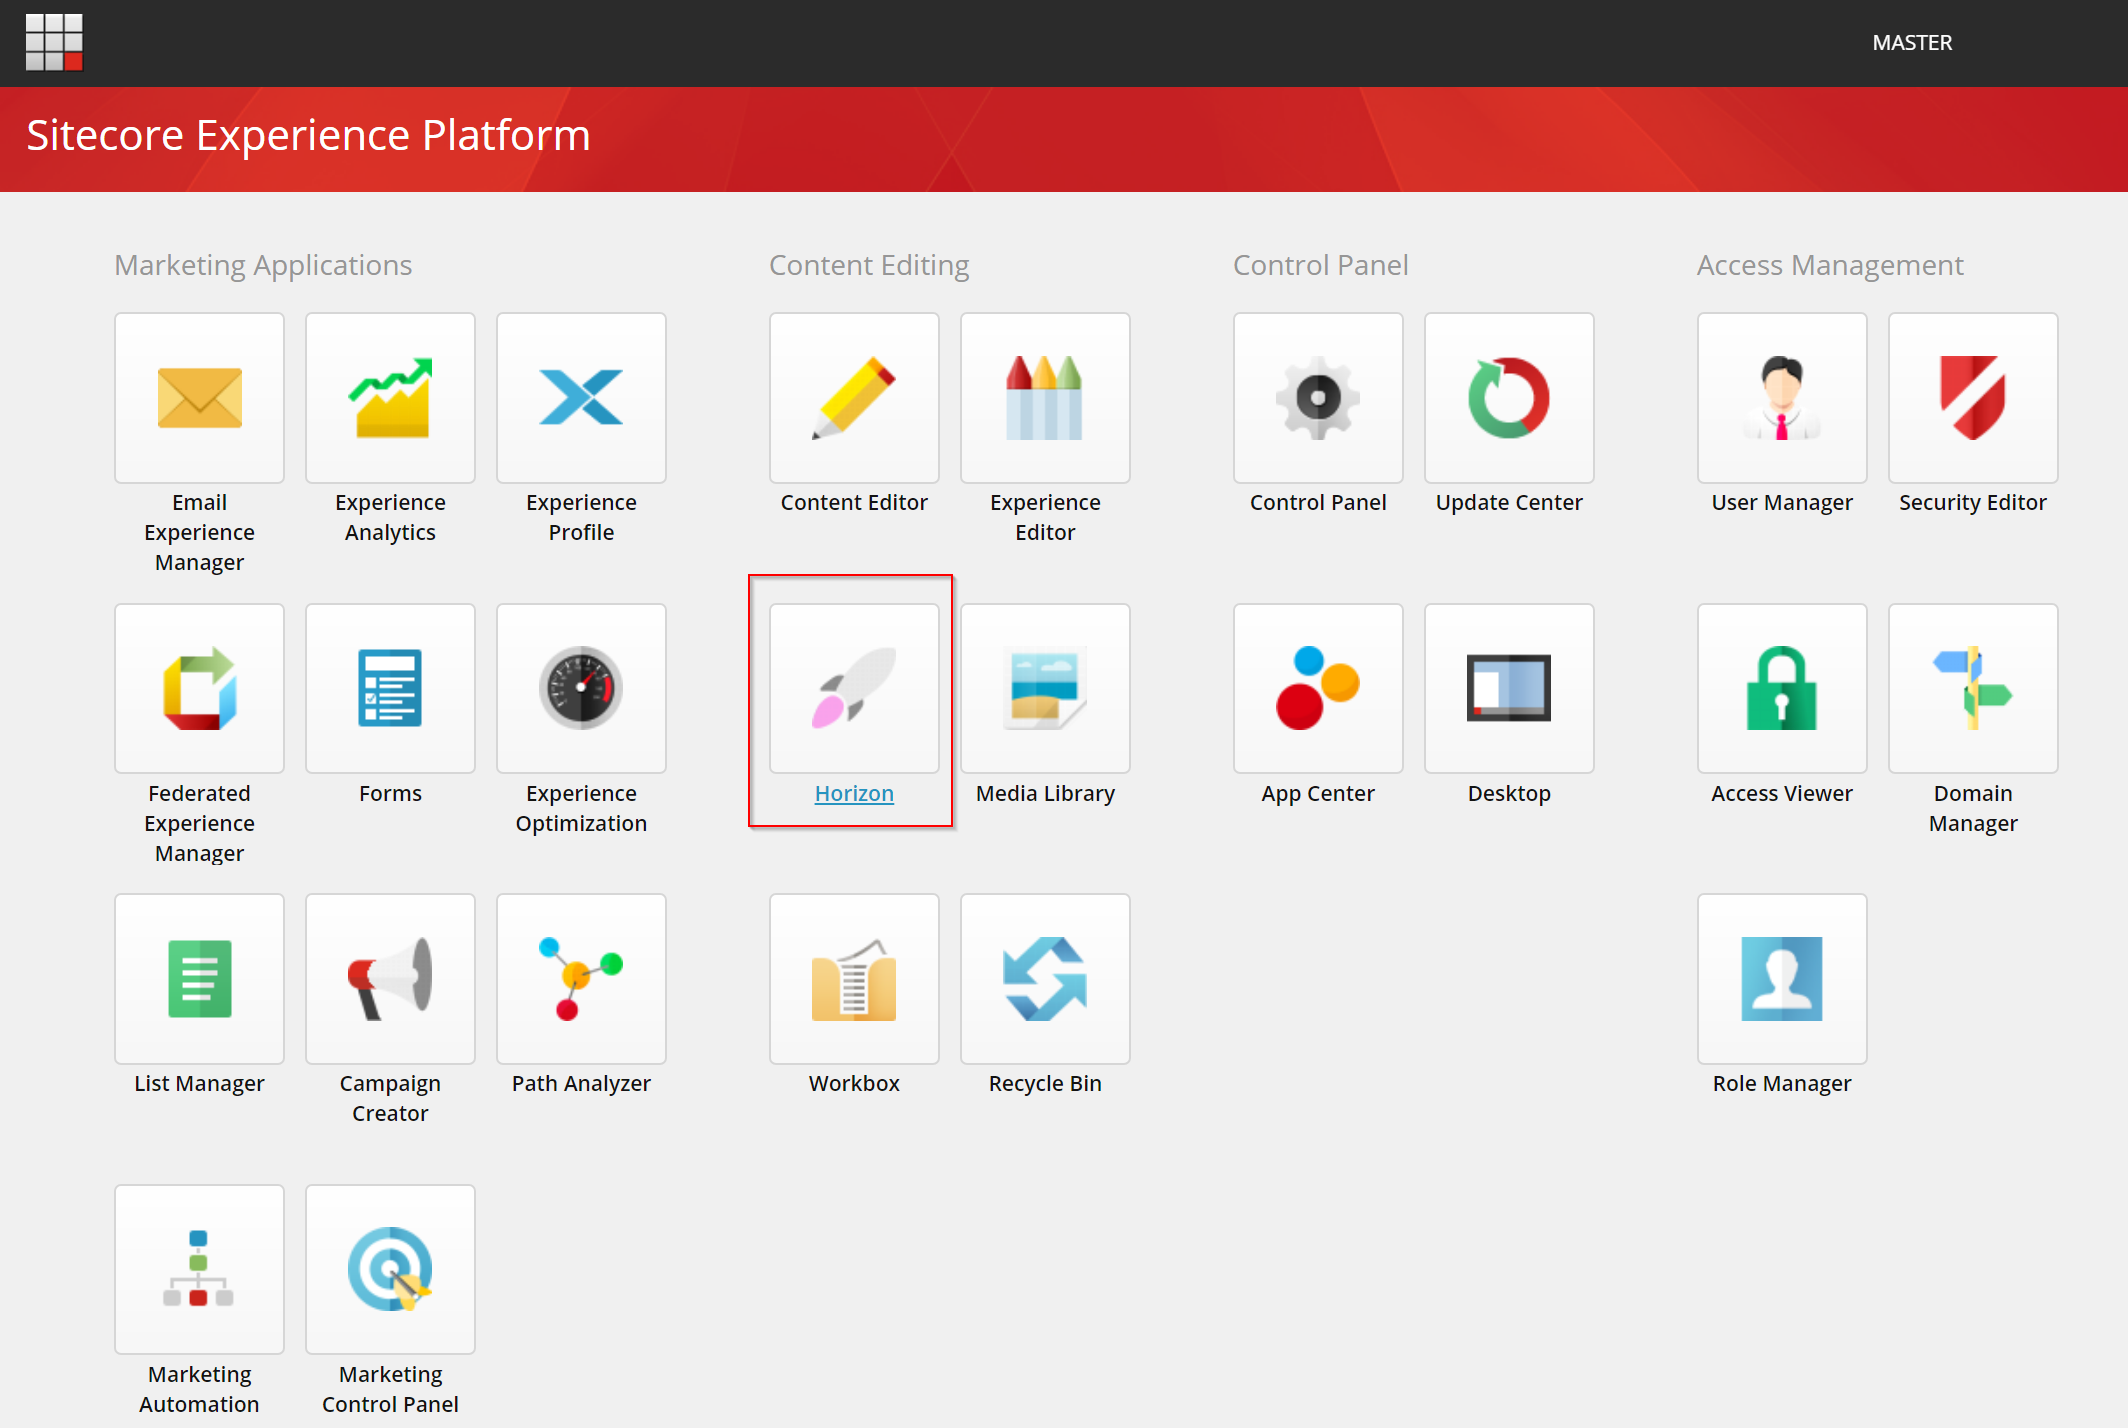 The Sitecore Launchpad with the Horizon icon